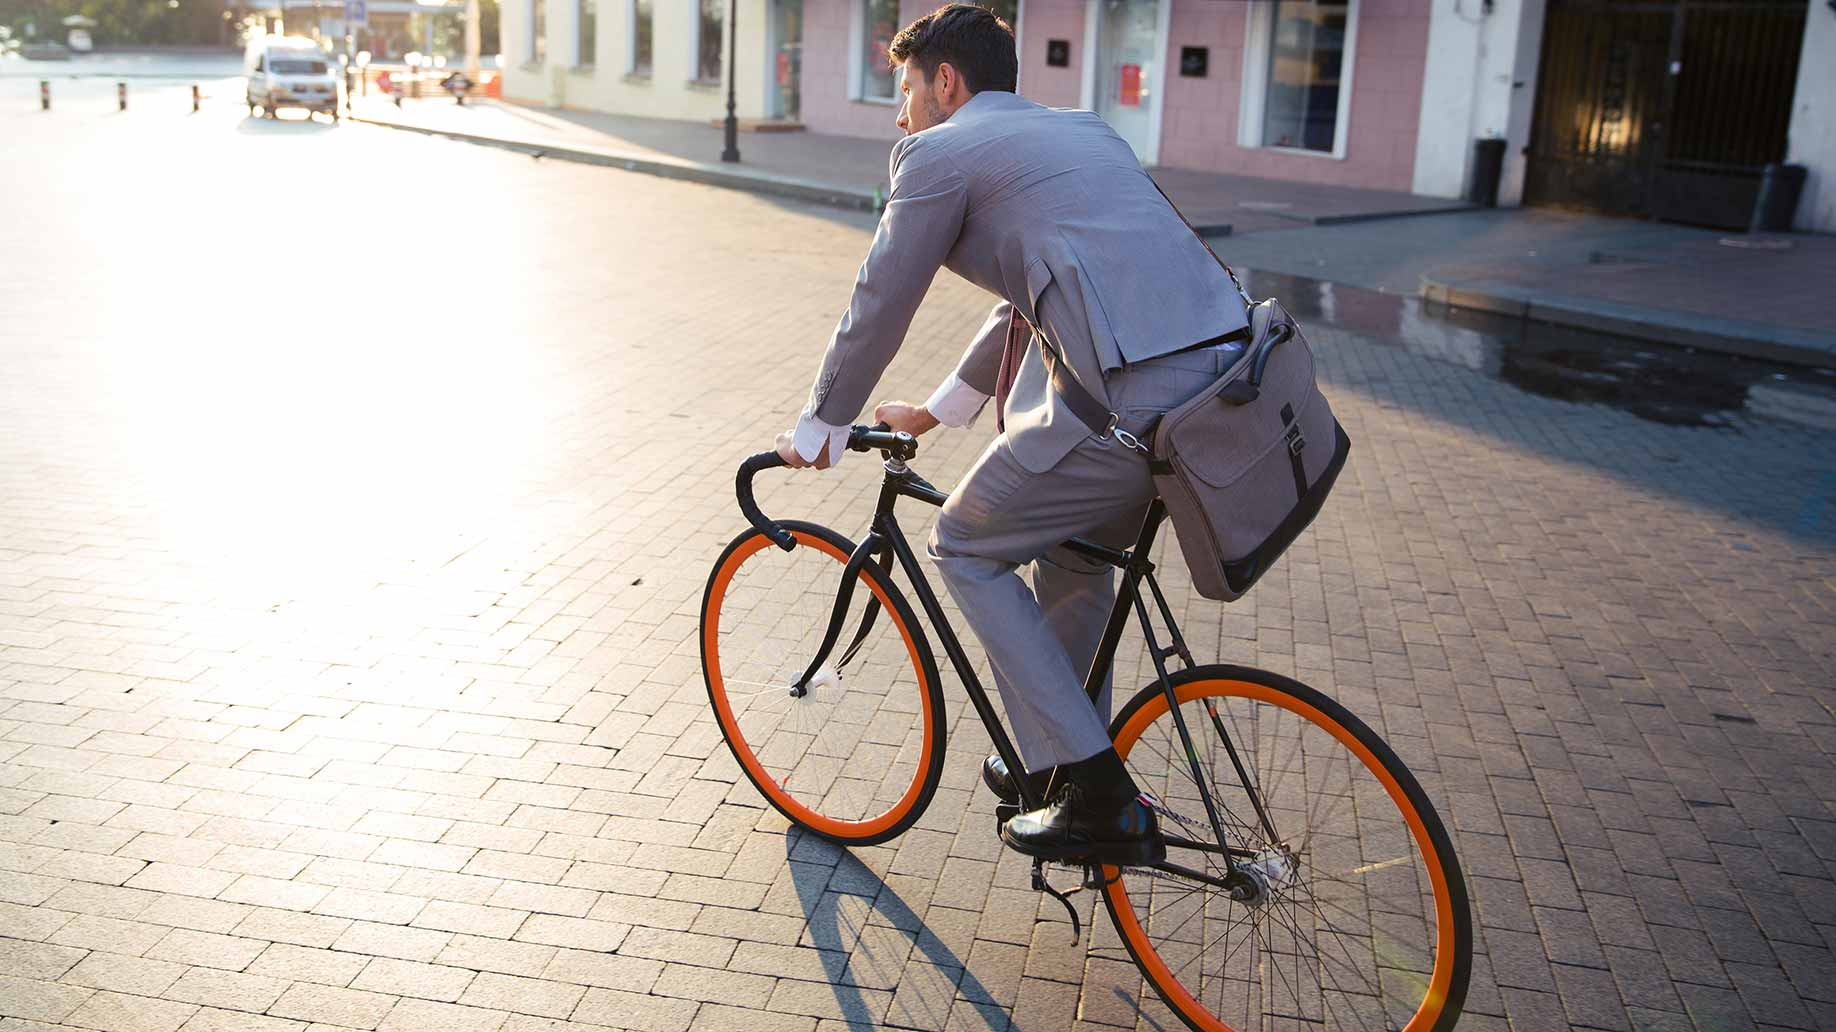 a young businessman in a suit riding a bicycle to work